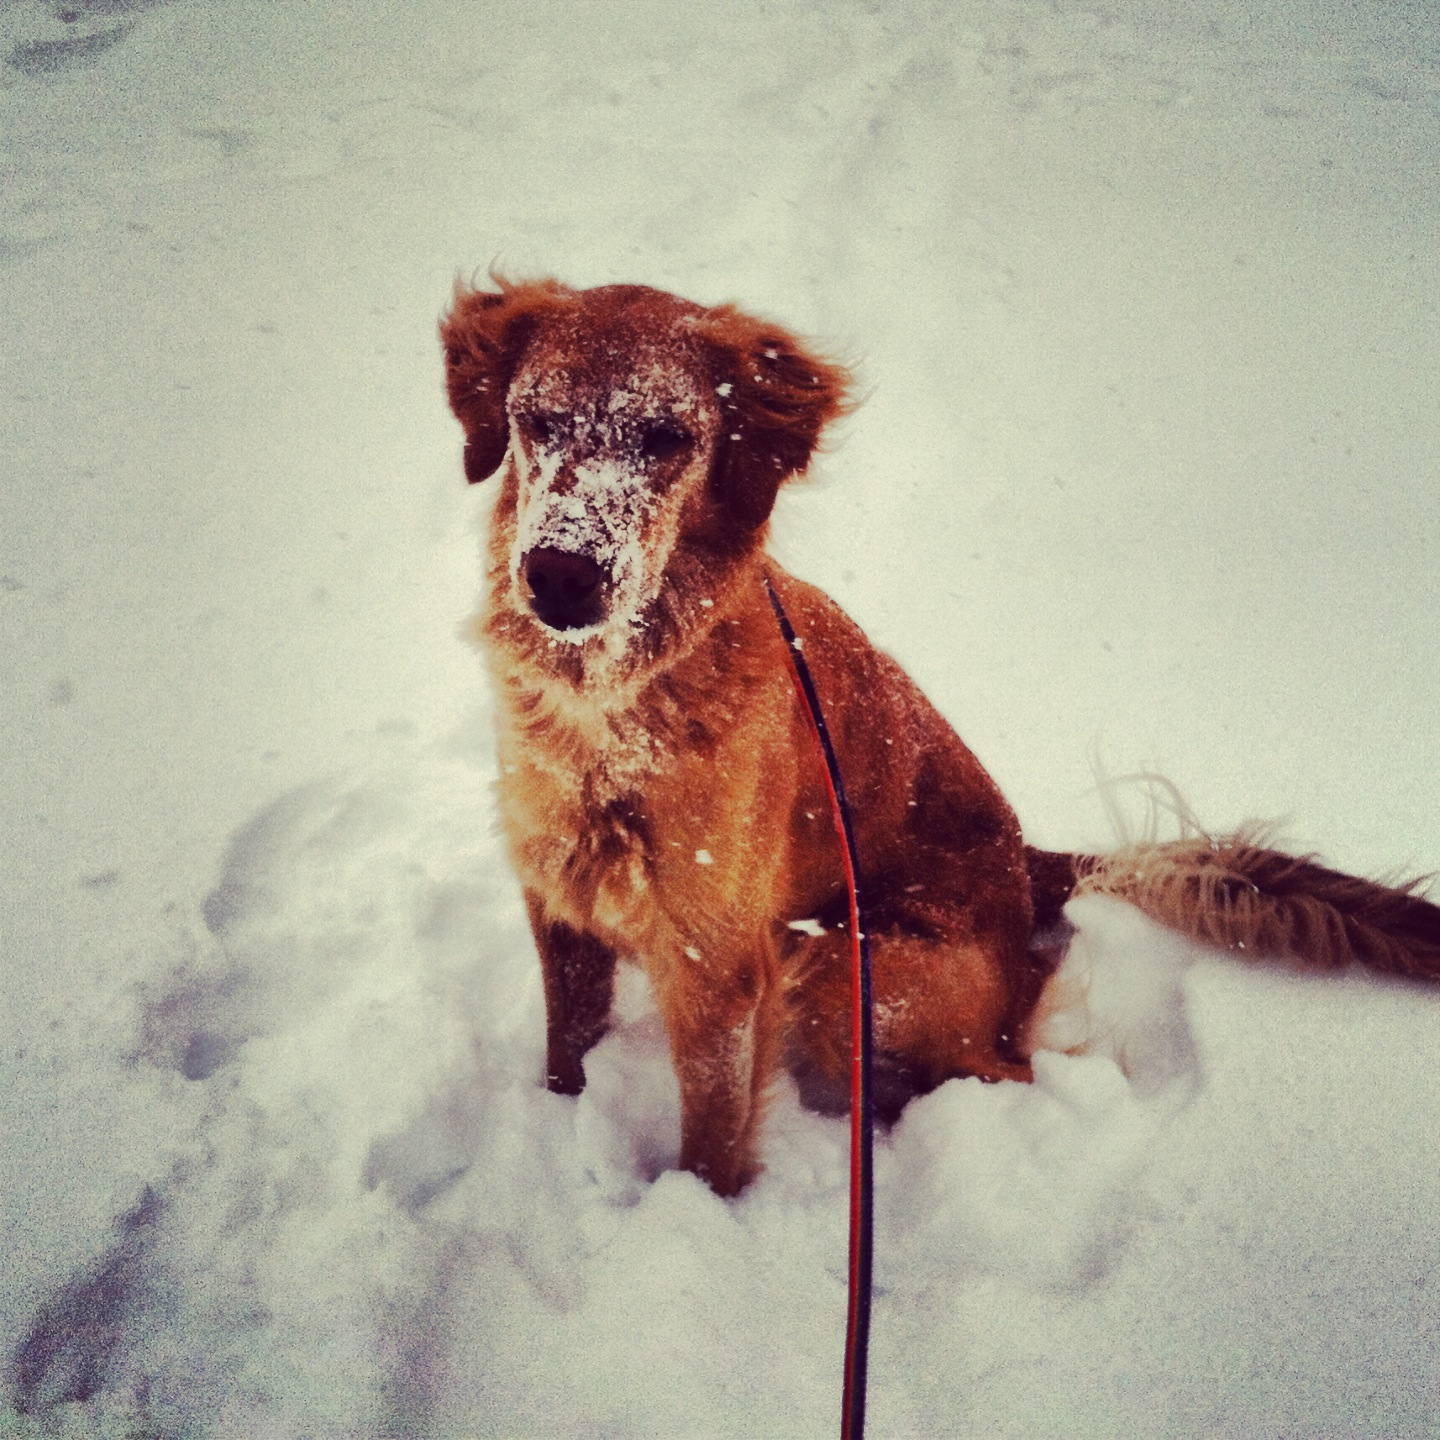 HSMO encourages pet owners to bring them inside when its under 35